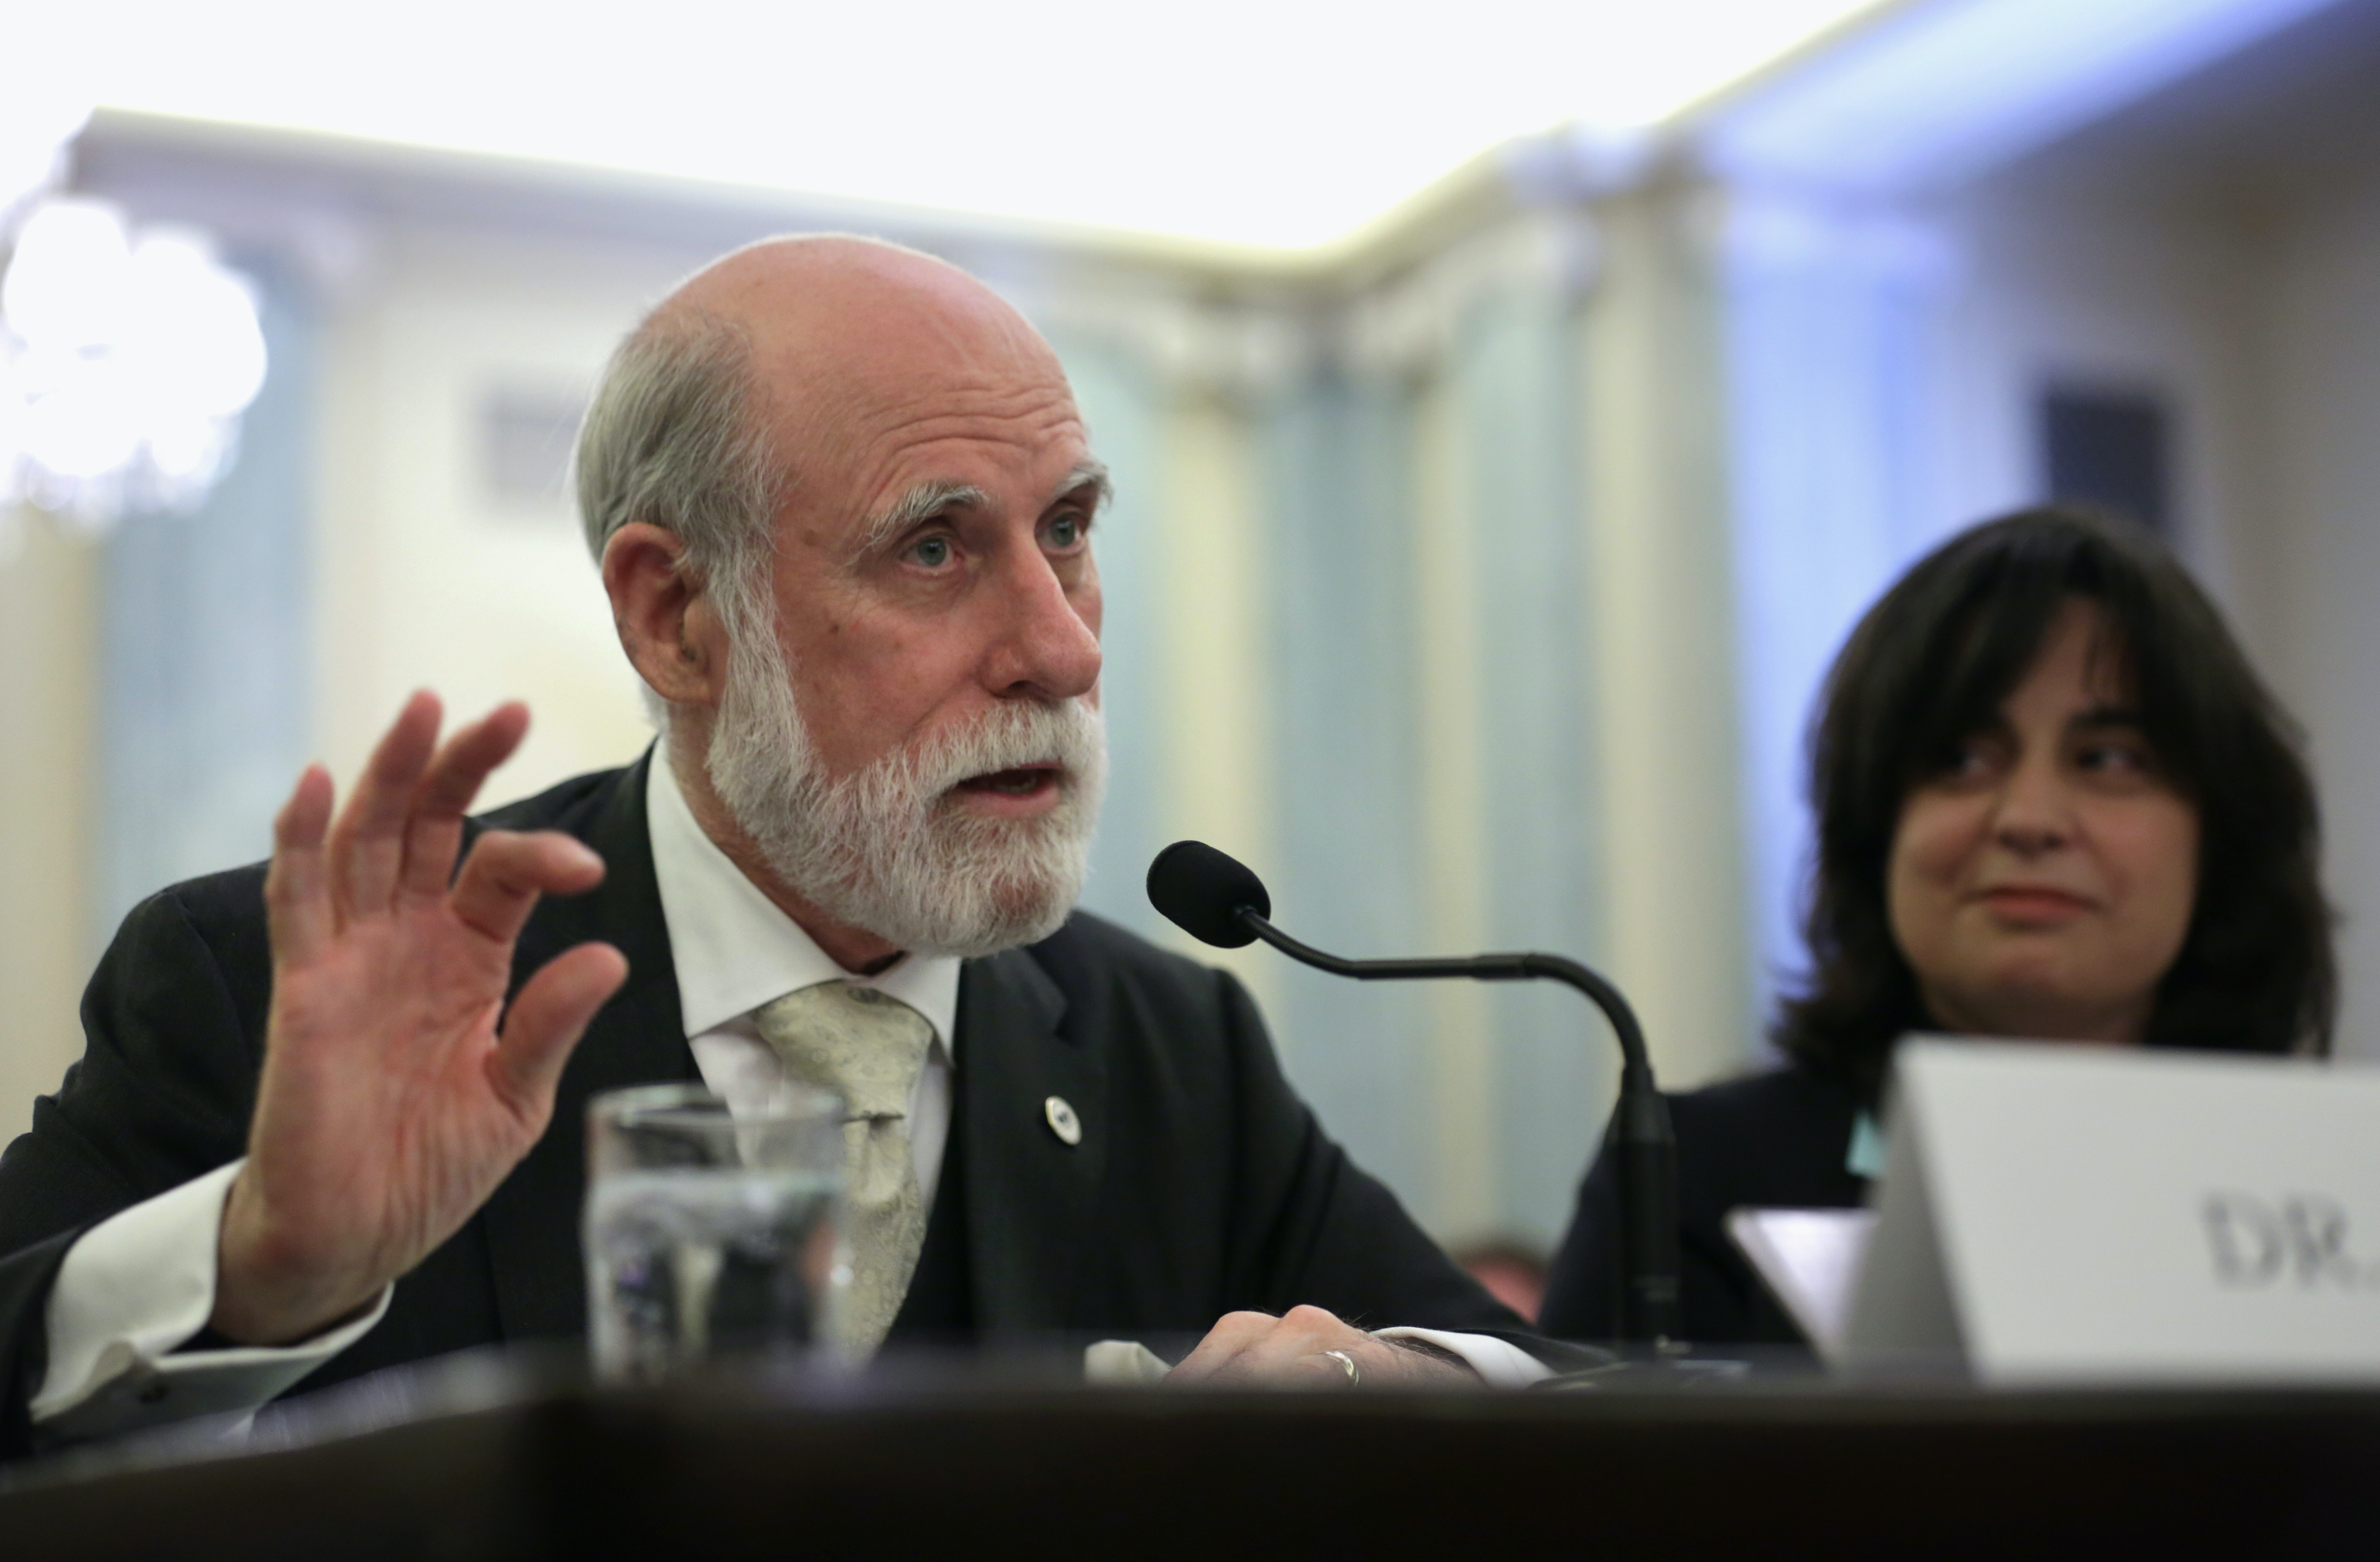 vint cerf is one of the 21 names signed to an open letter asking lawmakers to urge fcc chairman ajitjpegrectu003d14246239142931u0026autou003d formatcompressu0026wu003d1200 httpswwwinversecomarticle39340 nasa new horizons 2014 mu69